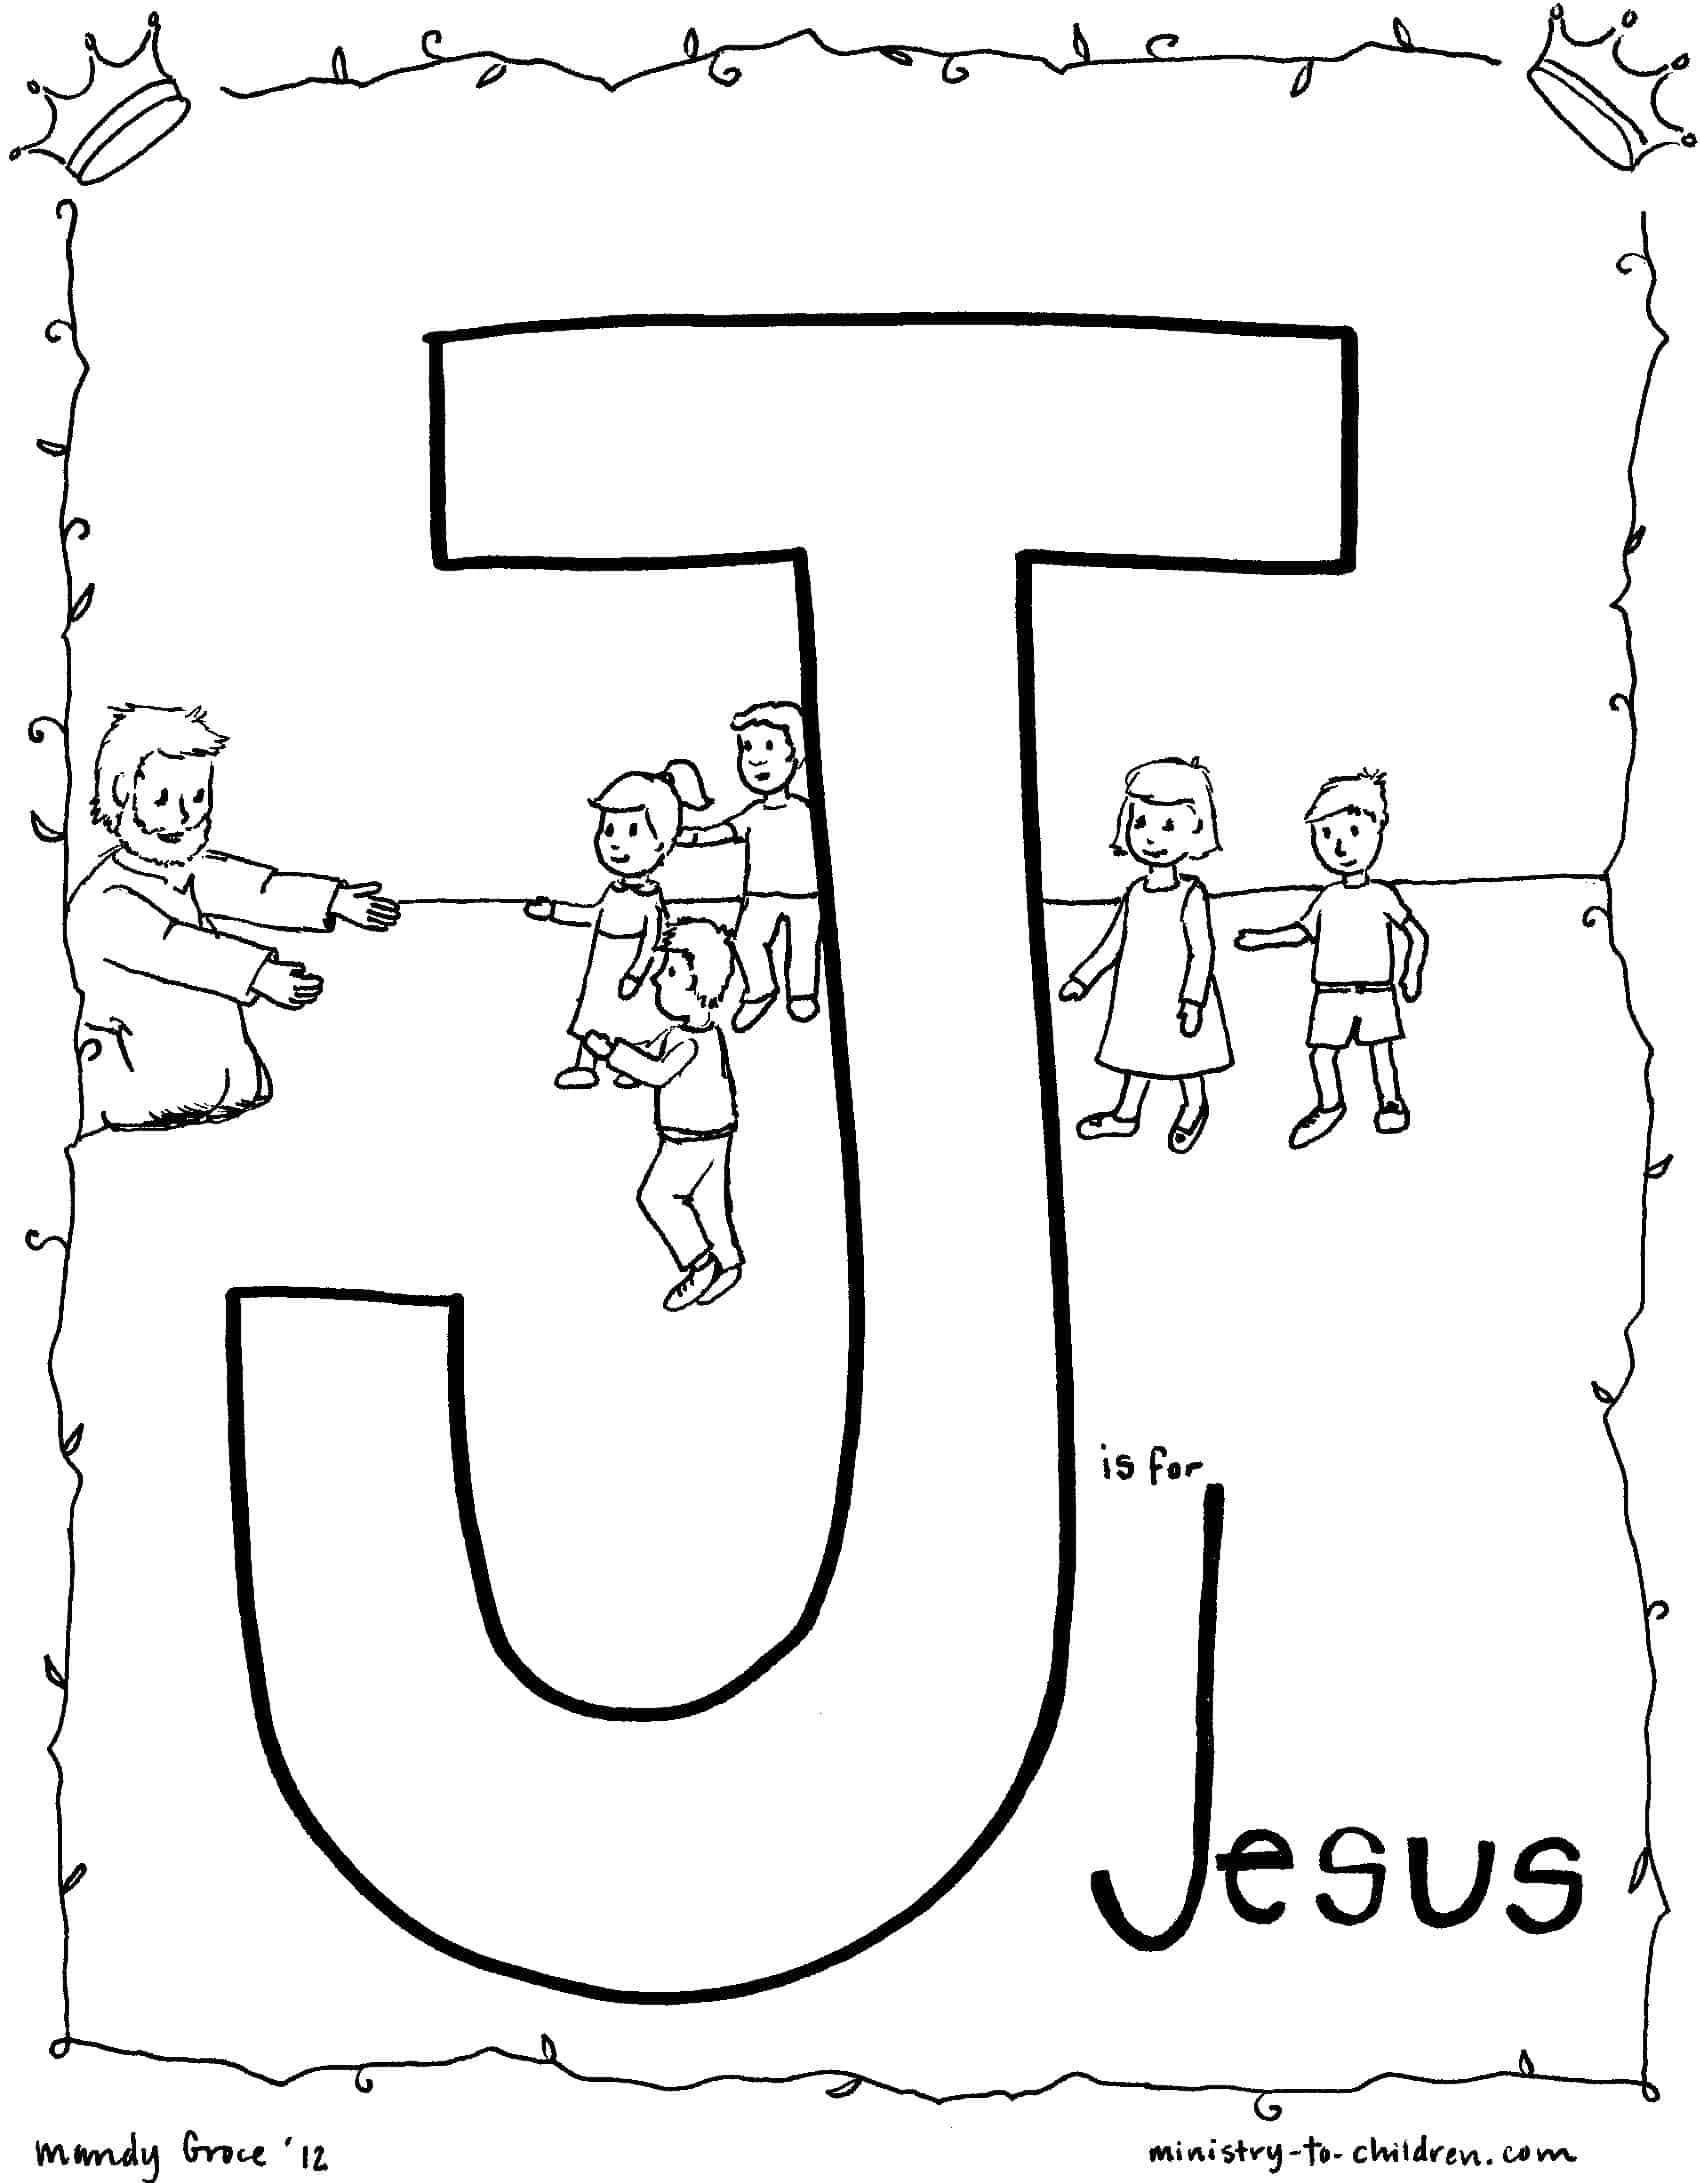 preschool church coloring pages coloring pages archaiccomely religious coloring pages pages preschool coloring church